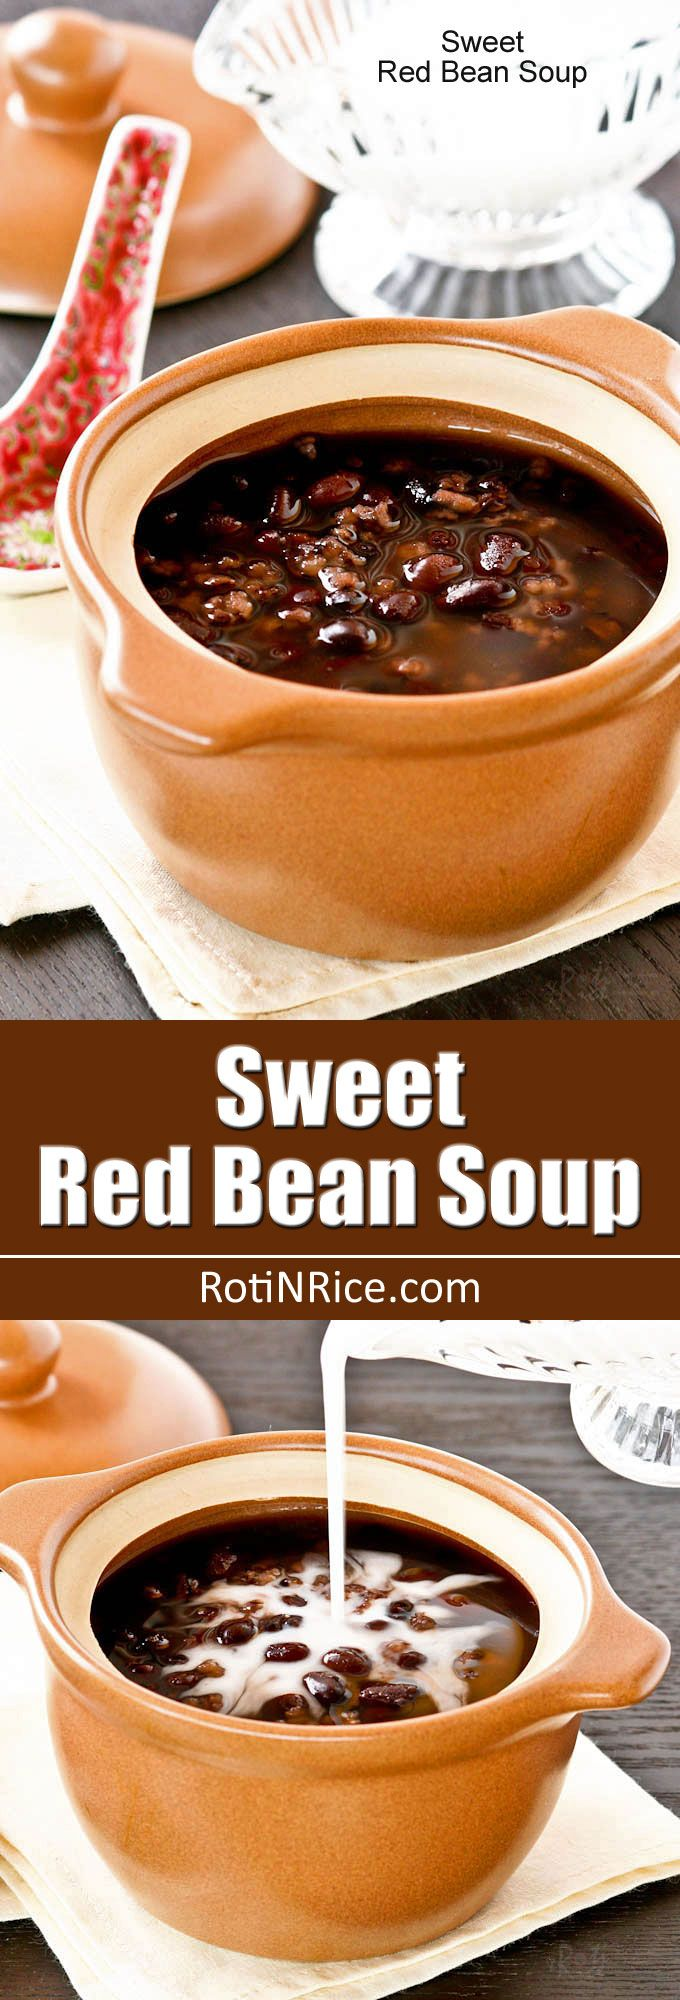 A twist on the popular Chinese Sweet Red Bean Soup dessert made with the addition of black glutinous rice. Delicious warm or cold with coconut cream. | RotiNRice.com